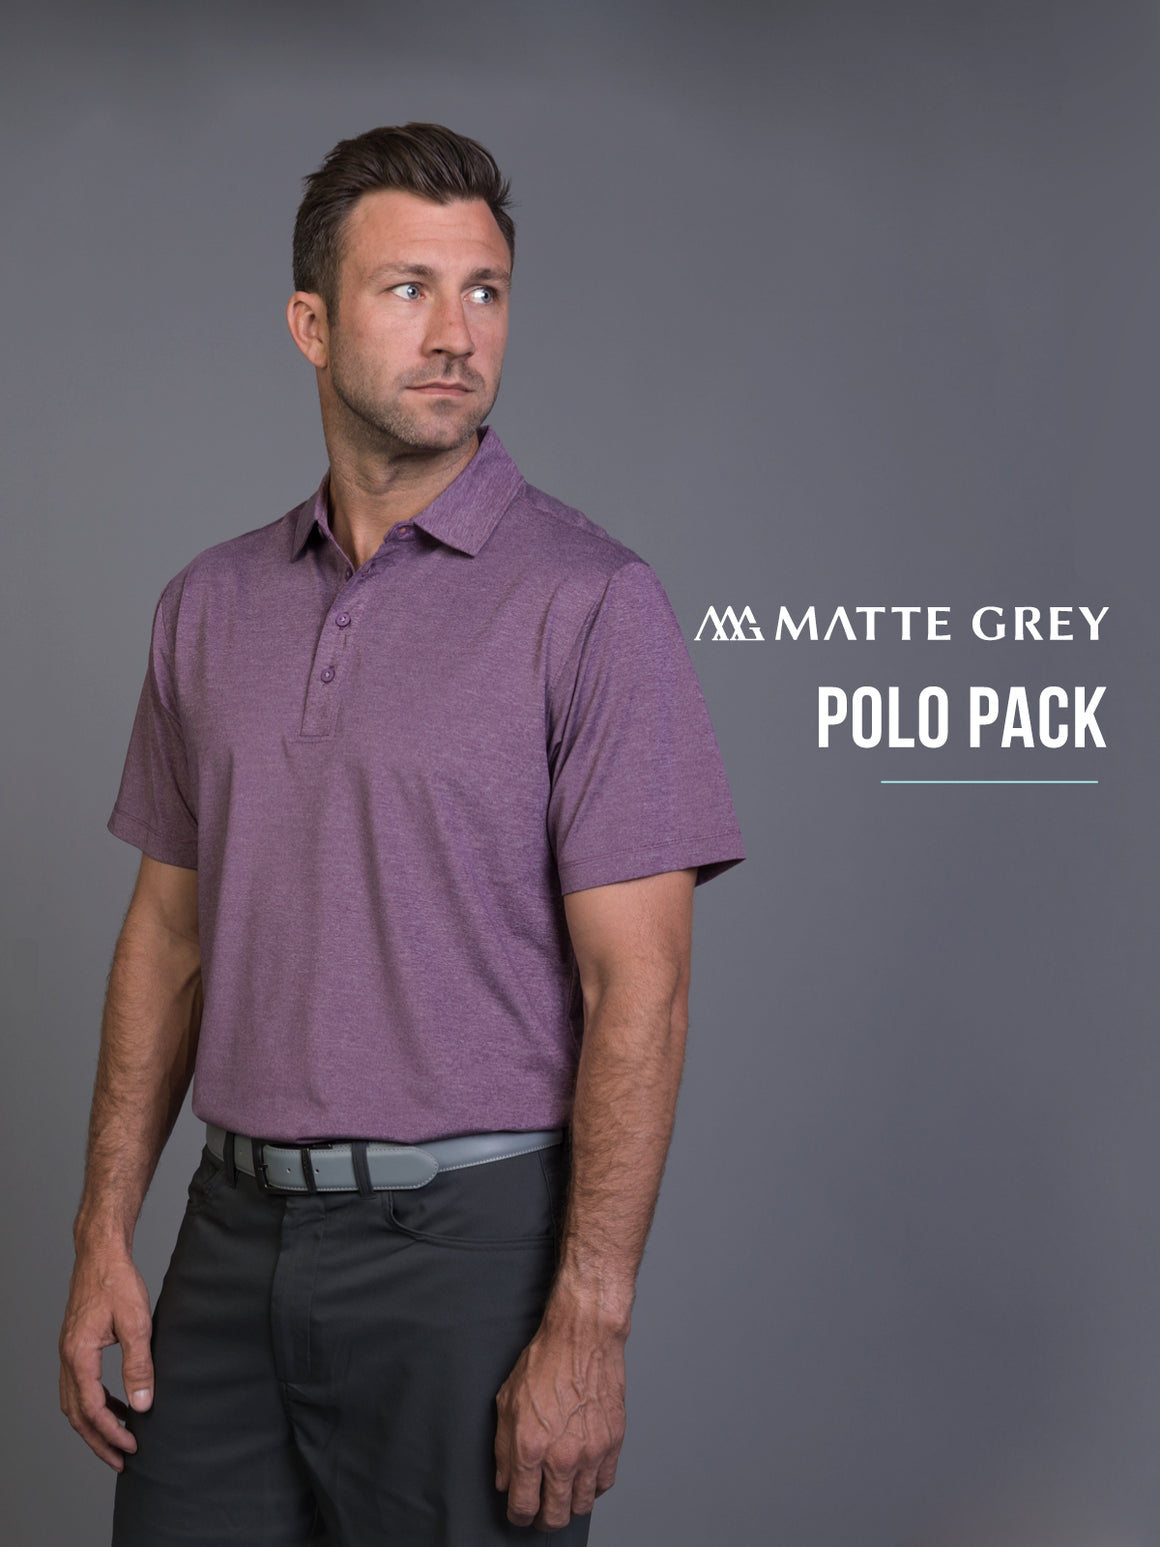 Matte Grey Polo Sample Pack Flash Sale